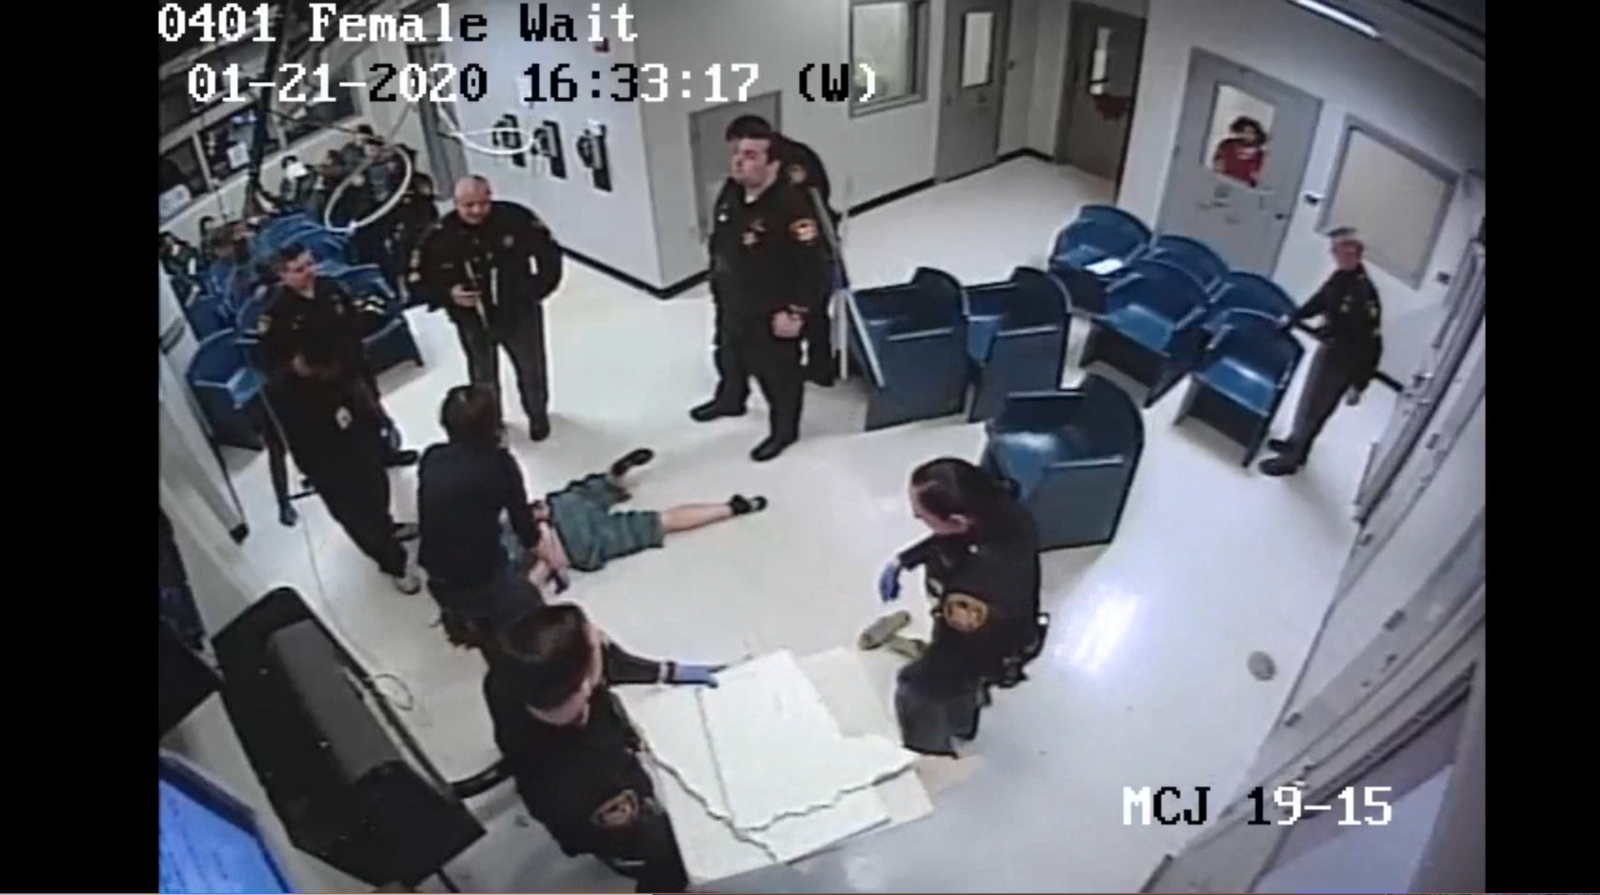 Jessica Boomershine is charged with escape and vandalism for climbing to the ceiling in a holding room at the Montgomery County Jail. She fell through the tiles and then fell into a trash can before being handcuffed and taken to a jail cell. (Image courtesy Montgomery County Jail)